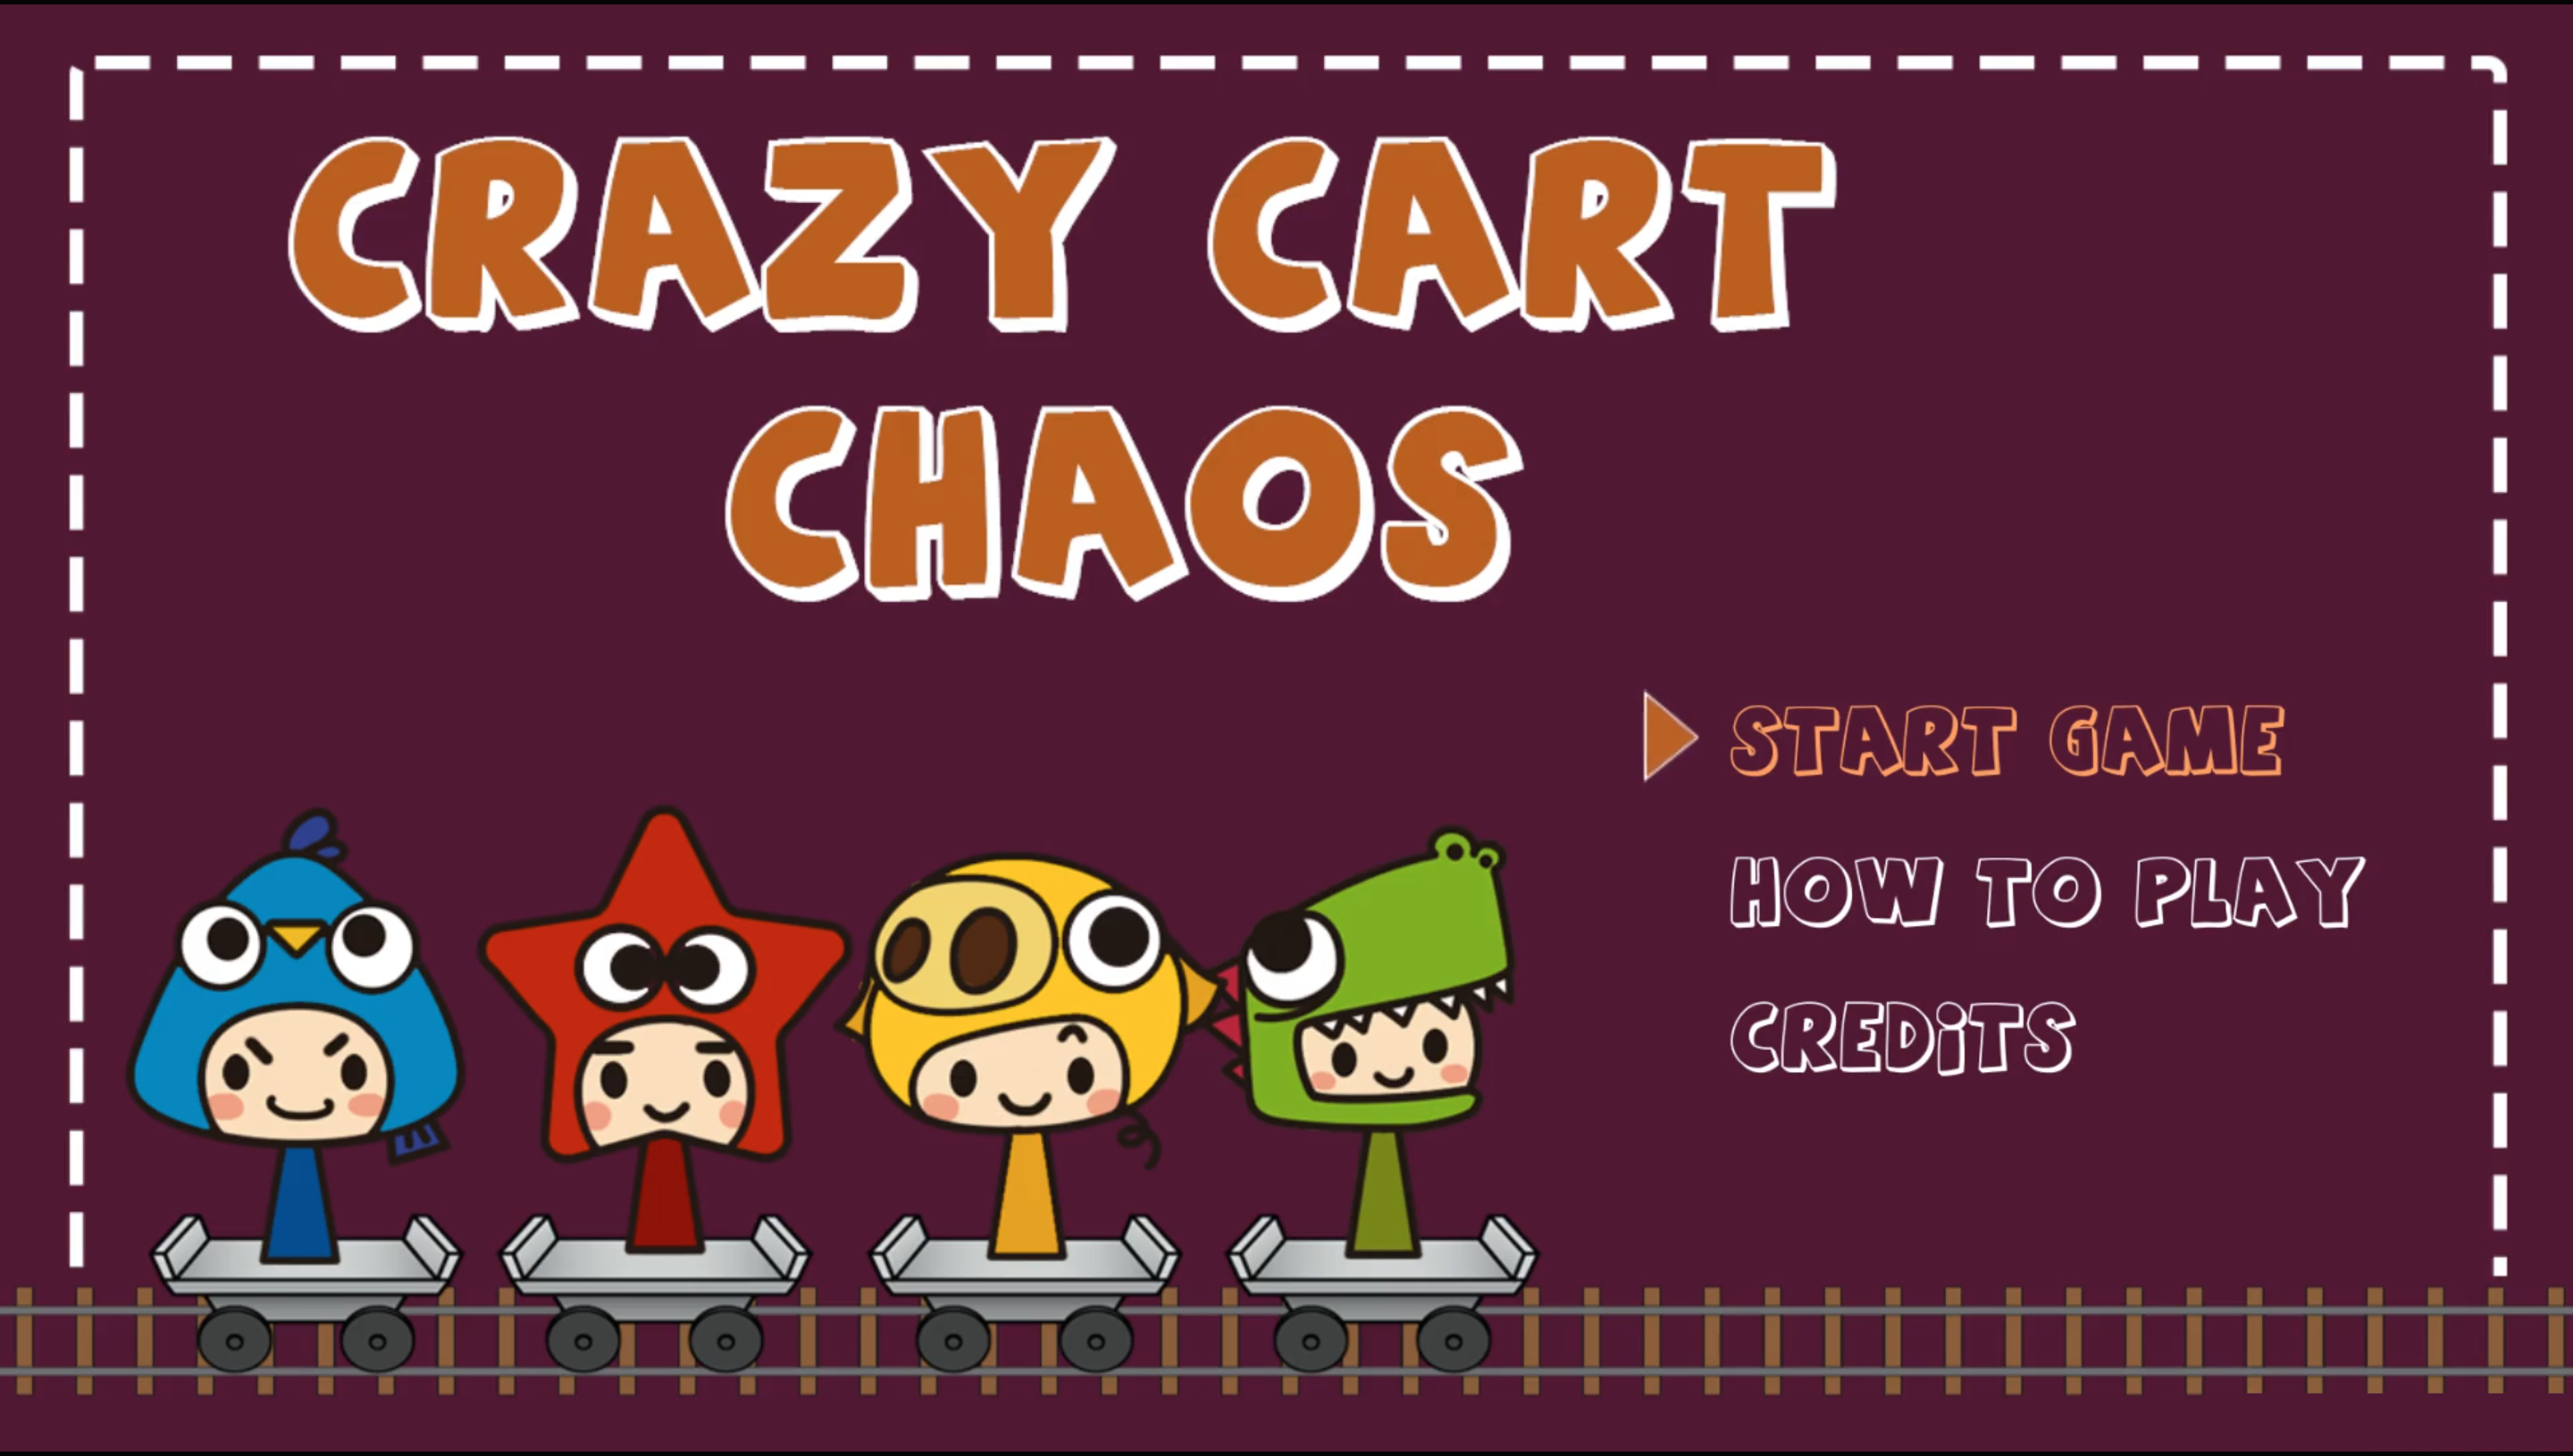 Crazy Cart Chaos